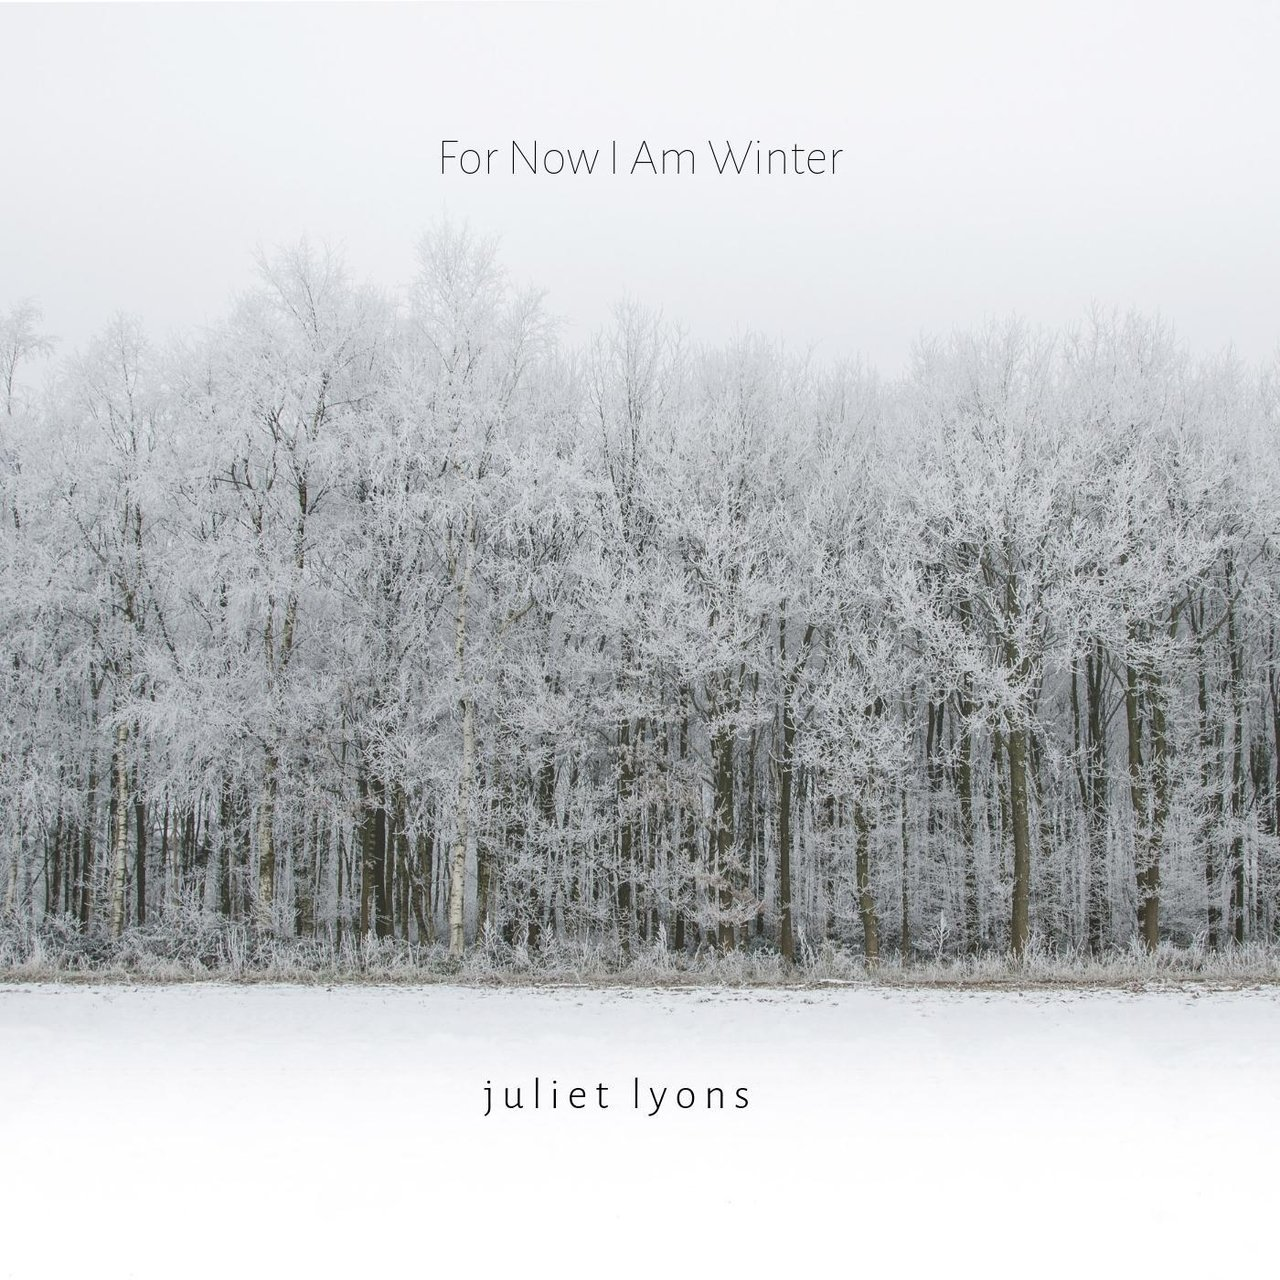 For Now I Am Winter